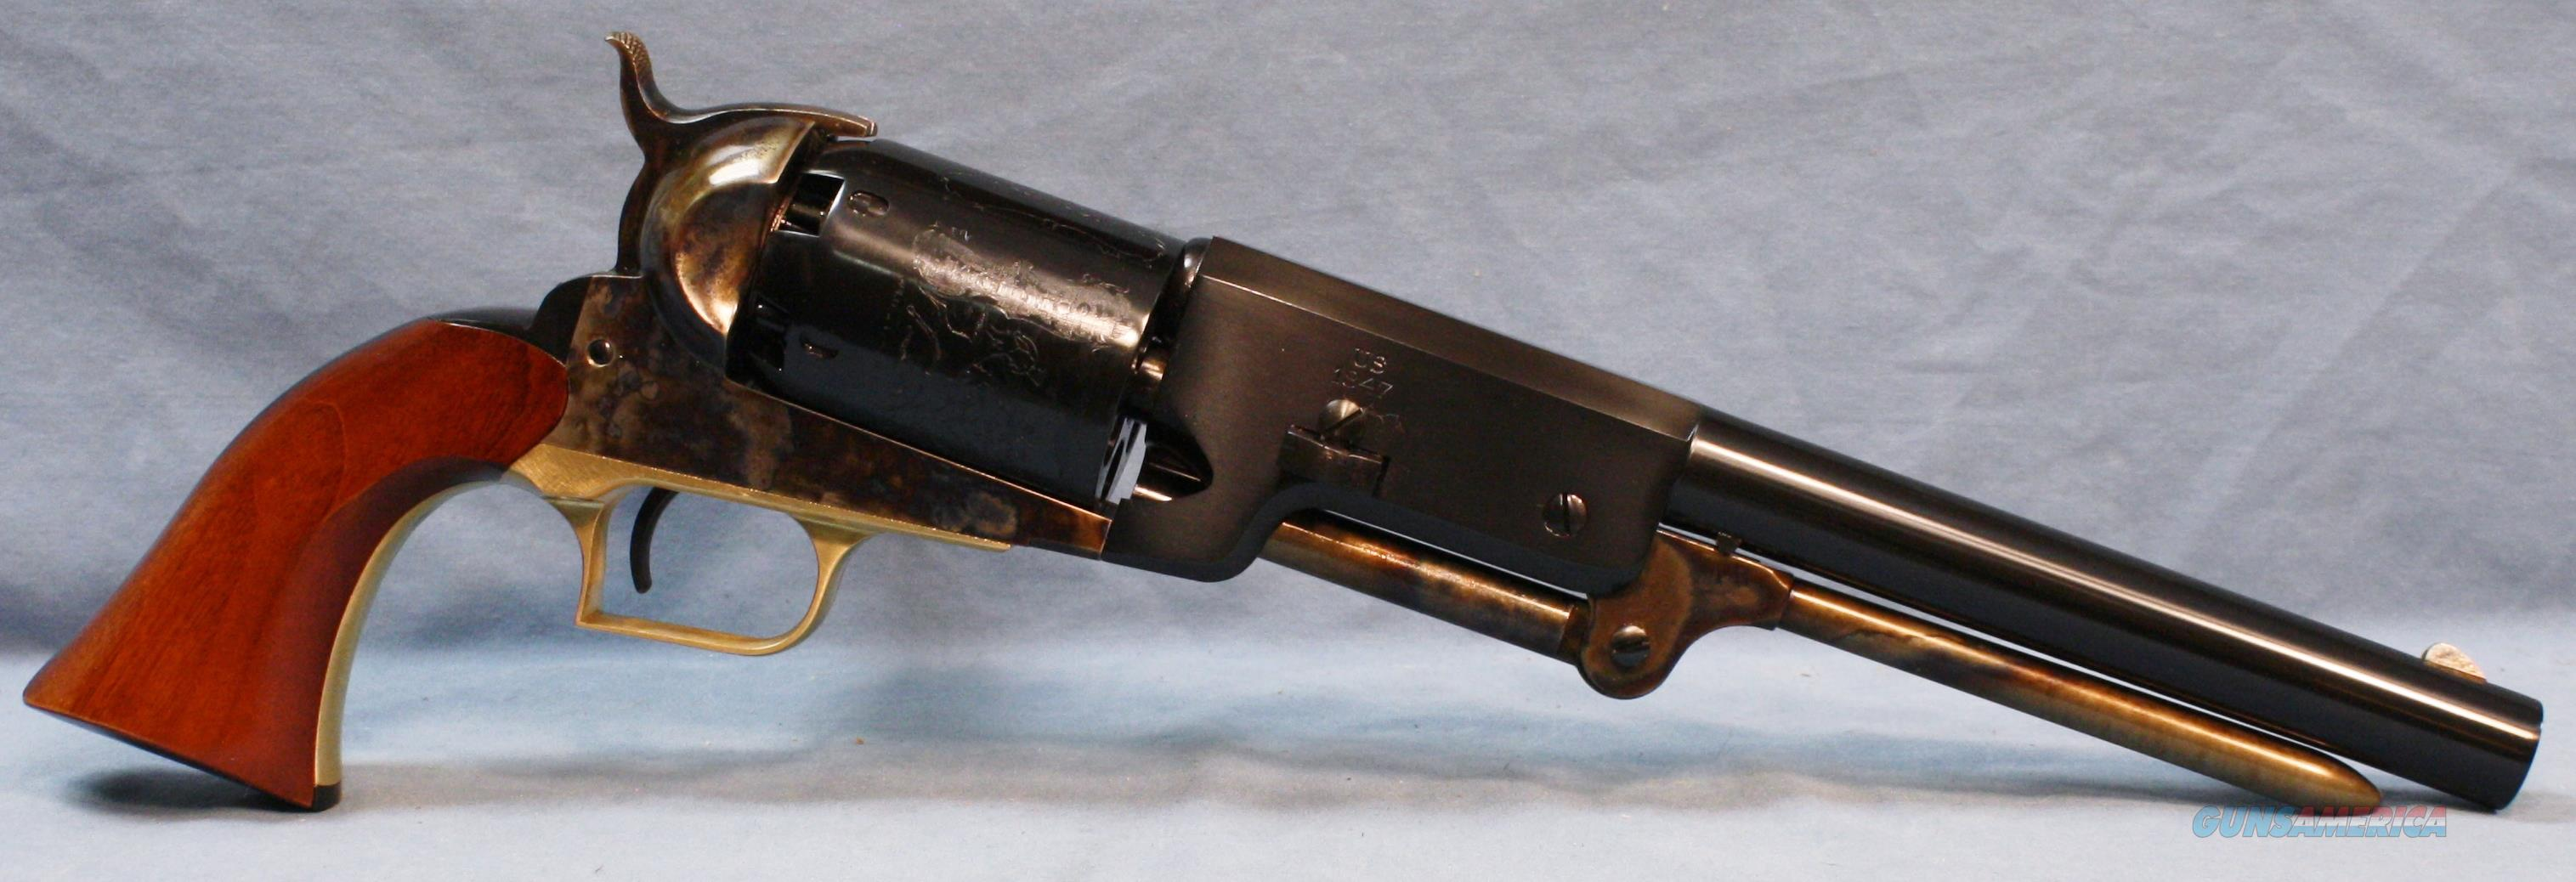 Uberti Model 1847 Walker .44 Caliber  Guns > Pistols > Uberti Pistols > Percussion